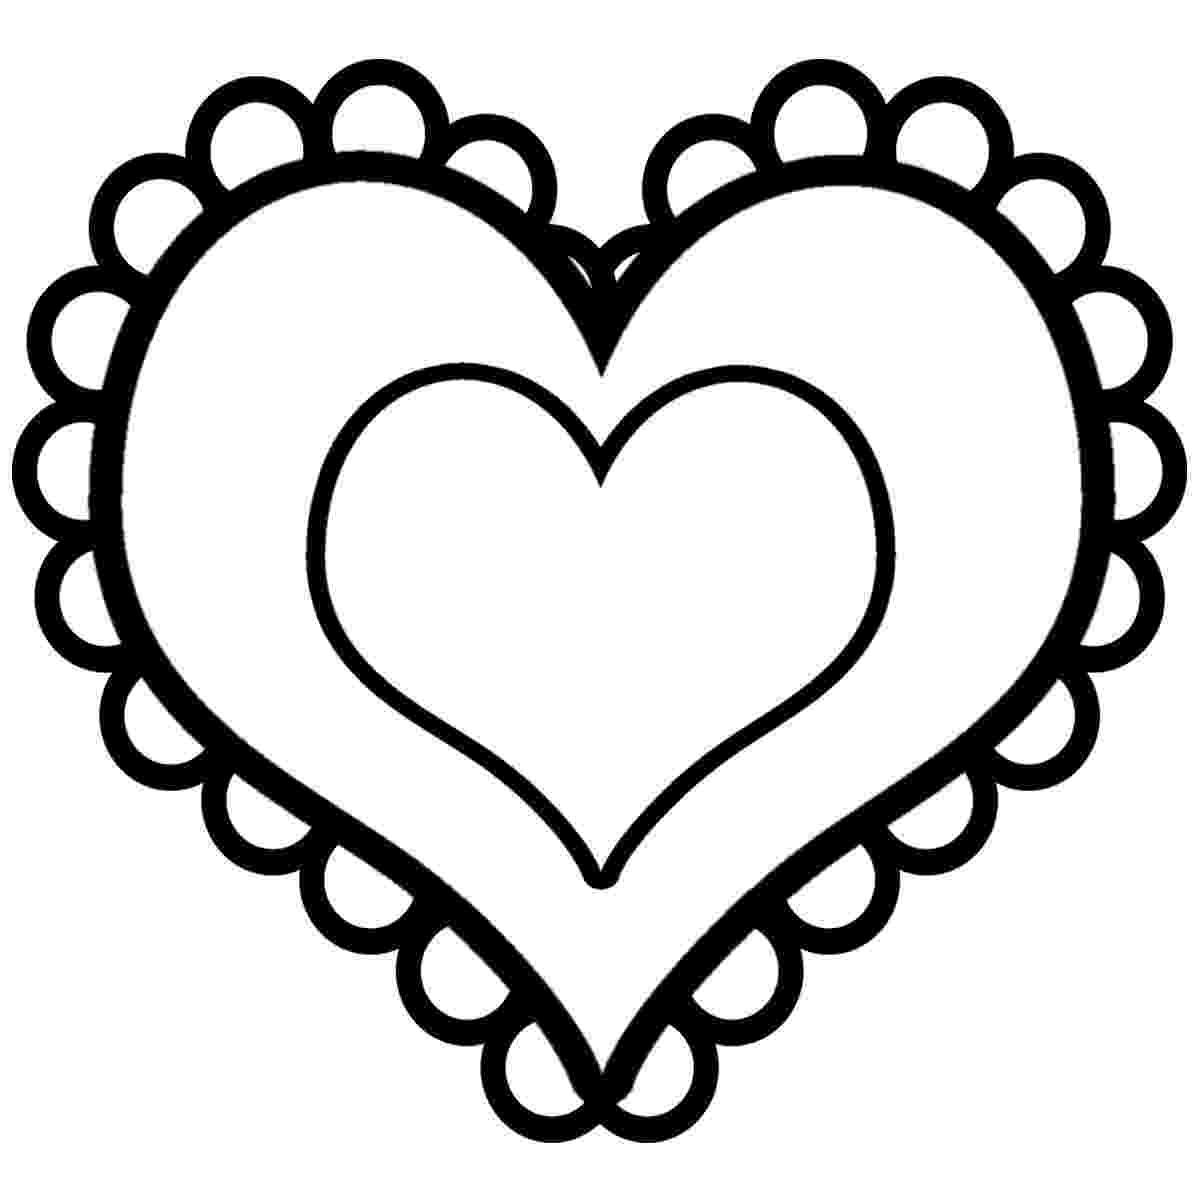 heart coloring sheets free printable heart coloring pages for kids heart coloring sheets